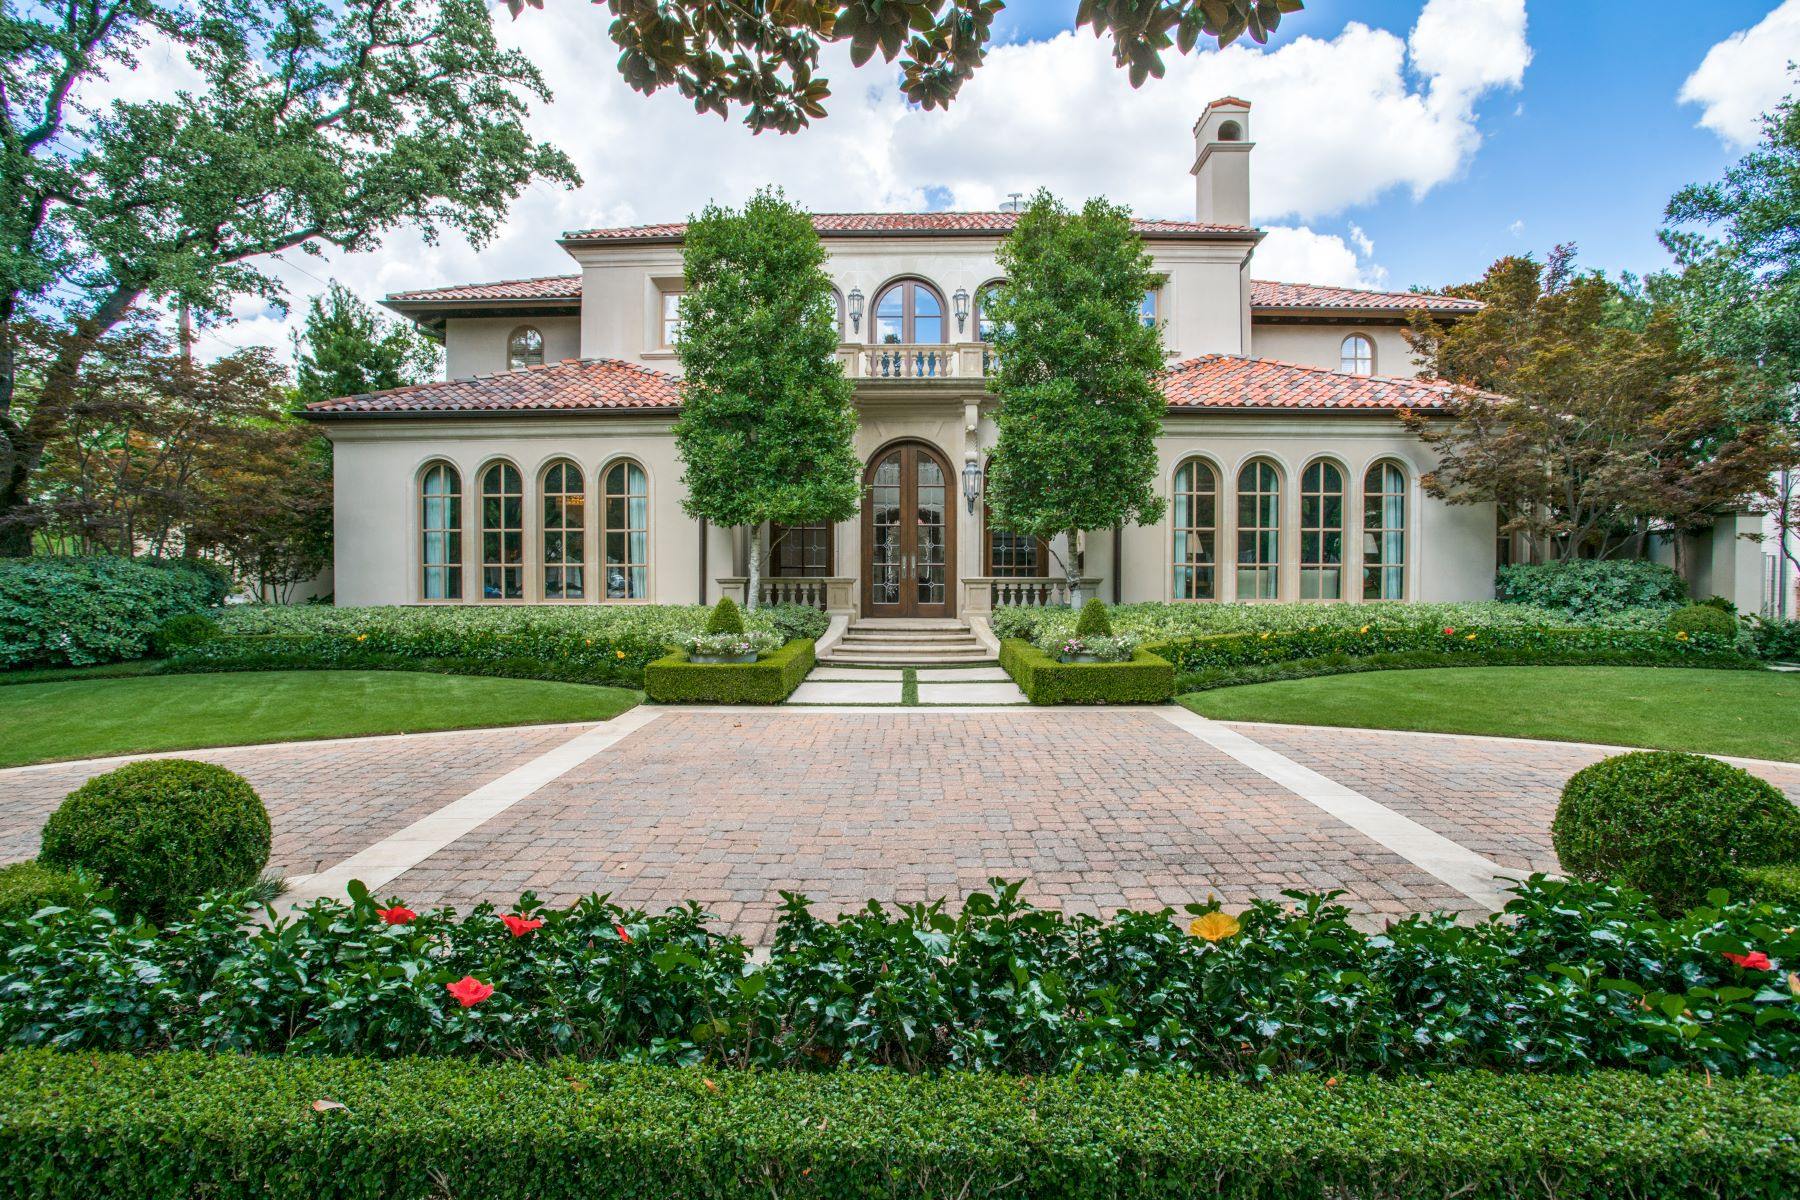 Single Family Homes for Sale at Exquisite Santa Barbara Design in Highland Park 4236 Lorraine Avenue Highland Park, Texas 75205 United States